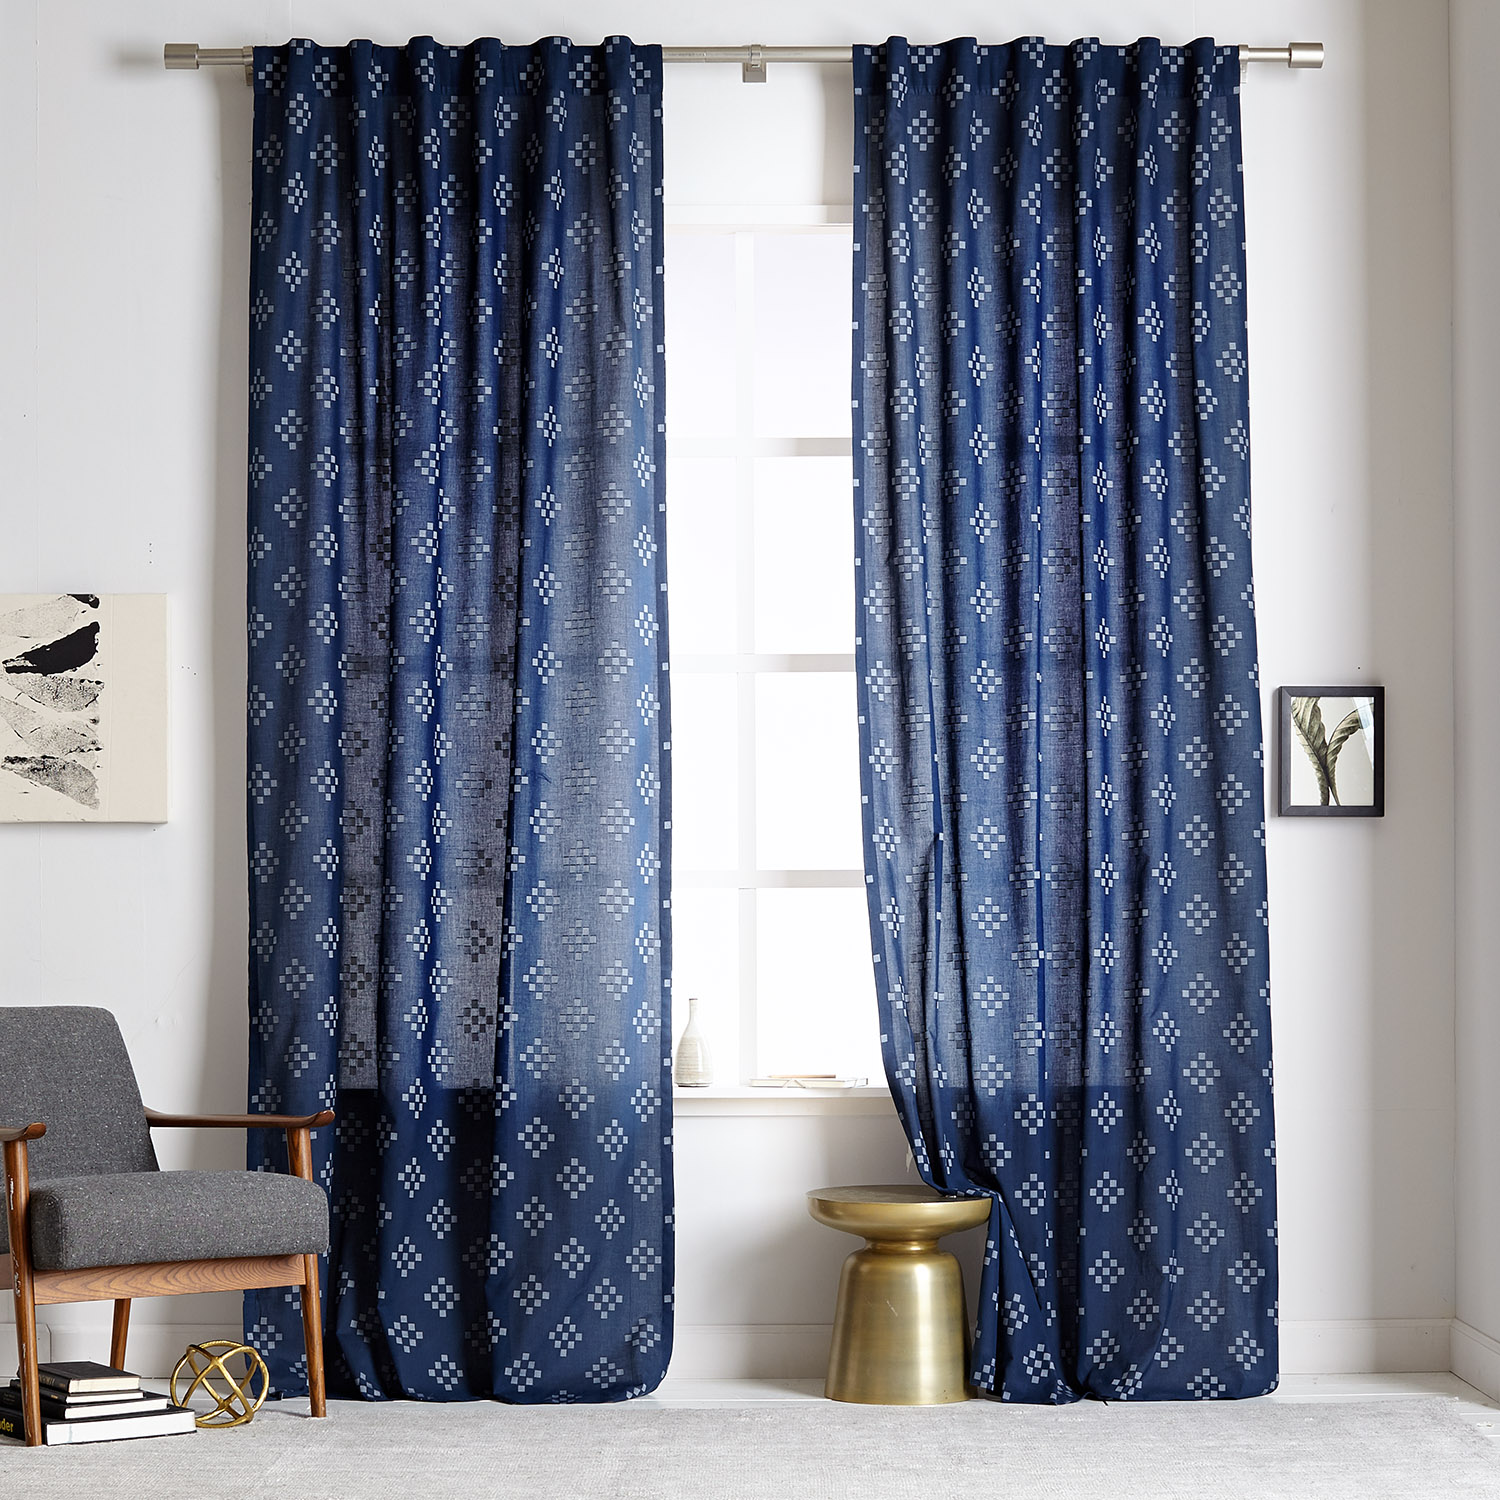 pip-1190938-stepped-geo-woven-curtain-midnight-su16-102_edited